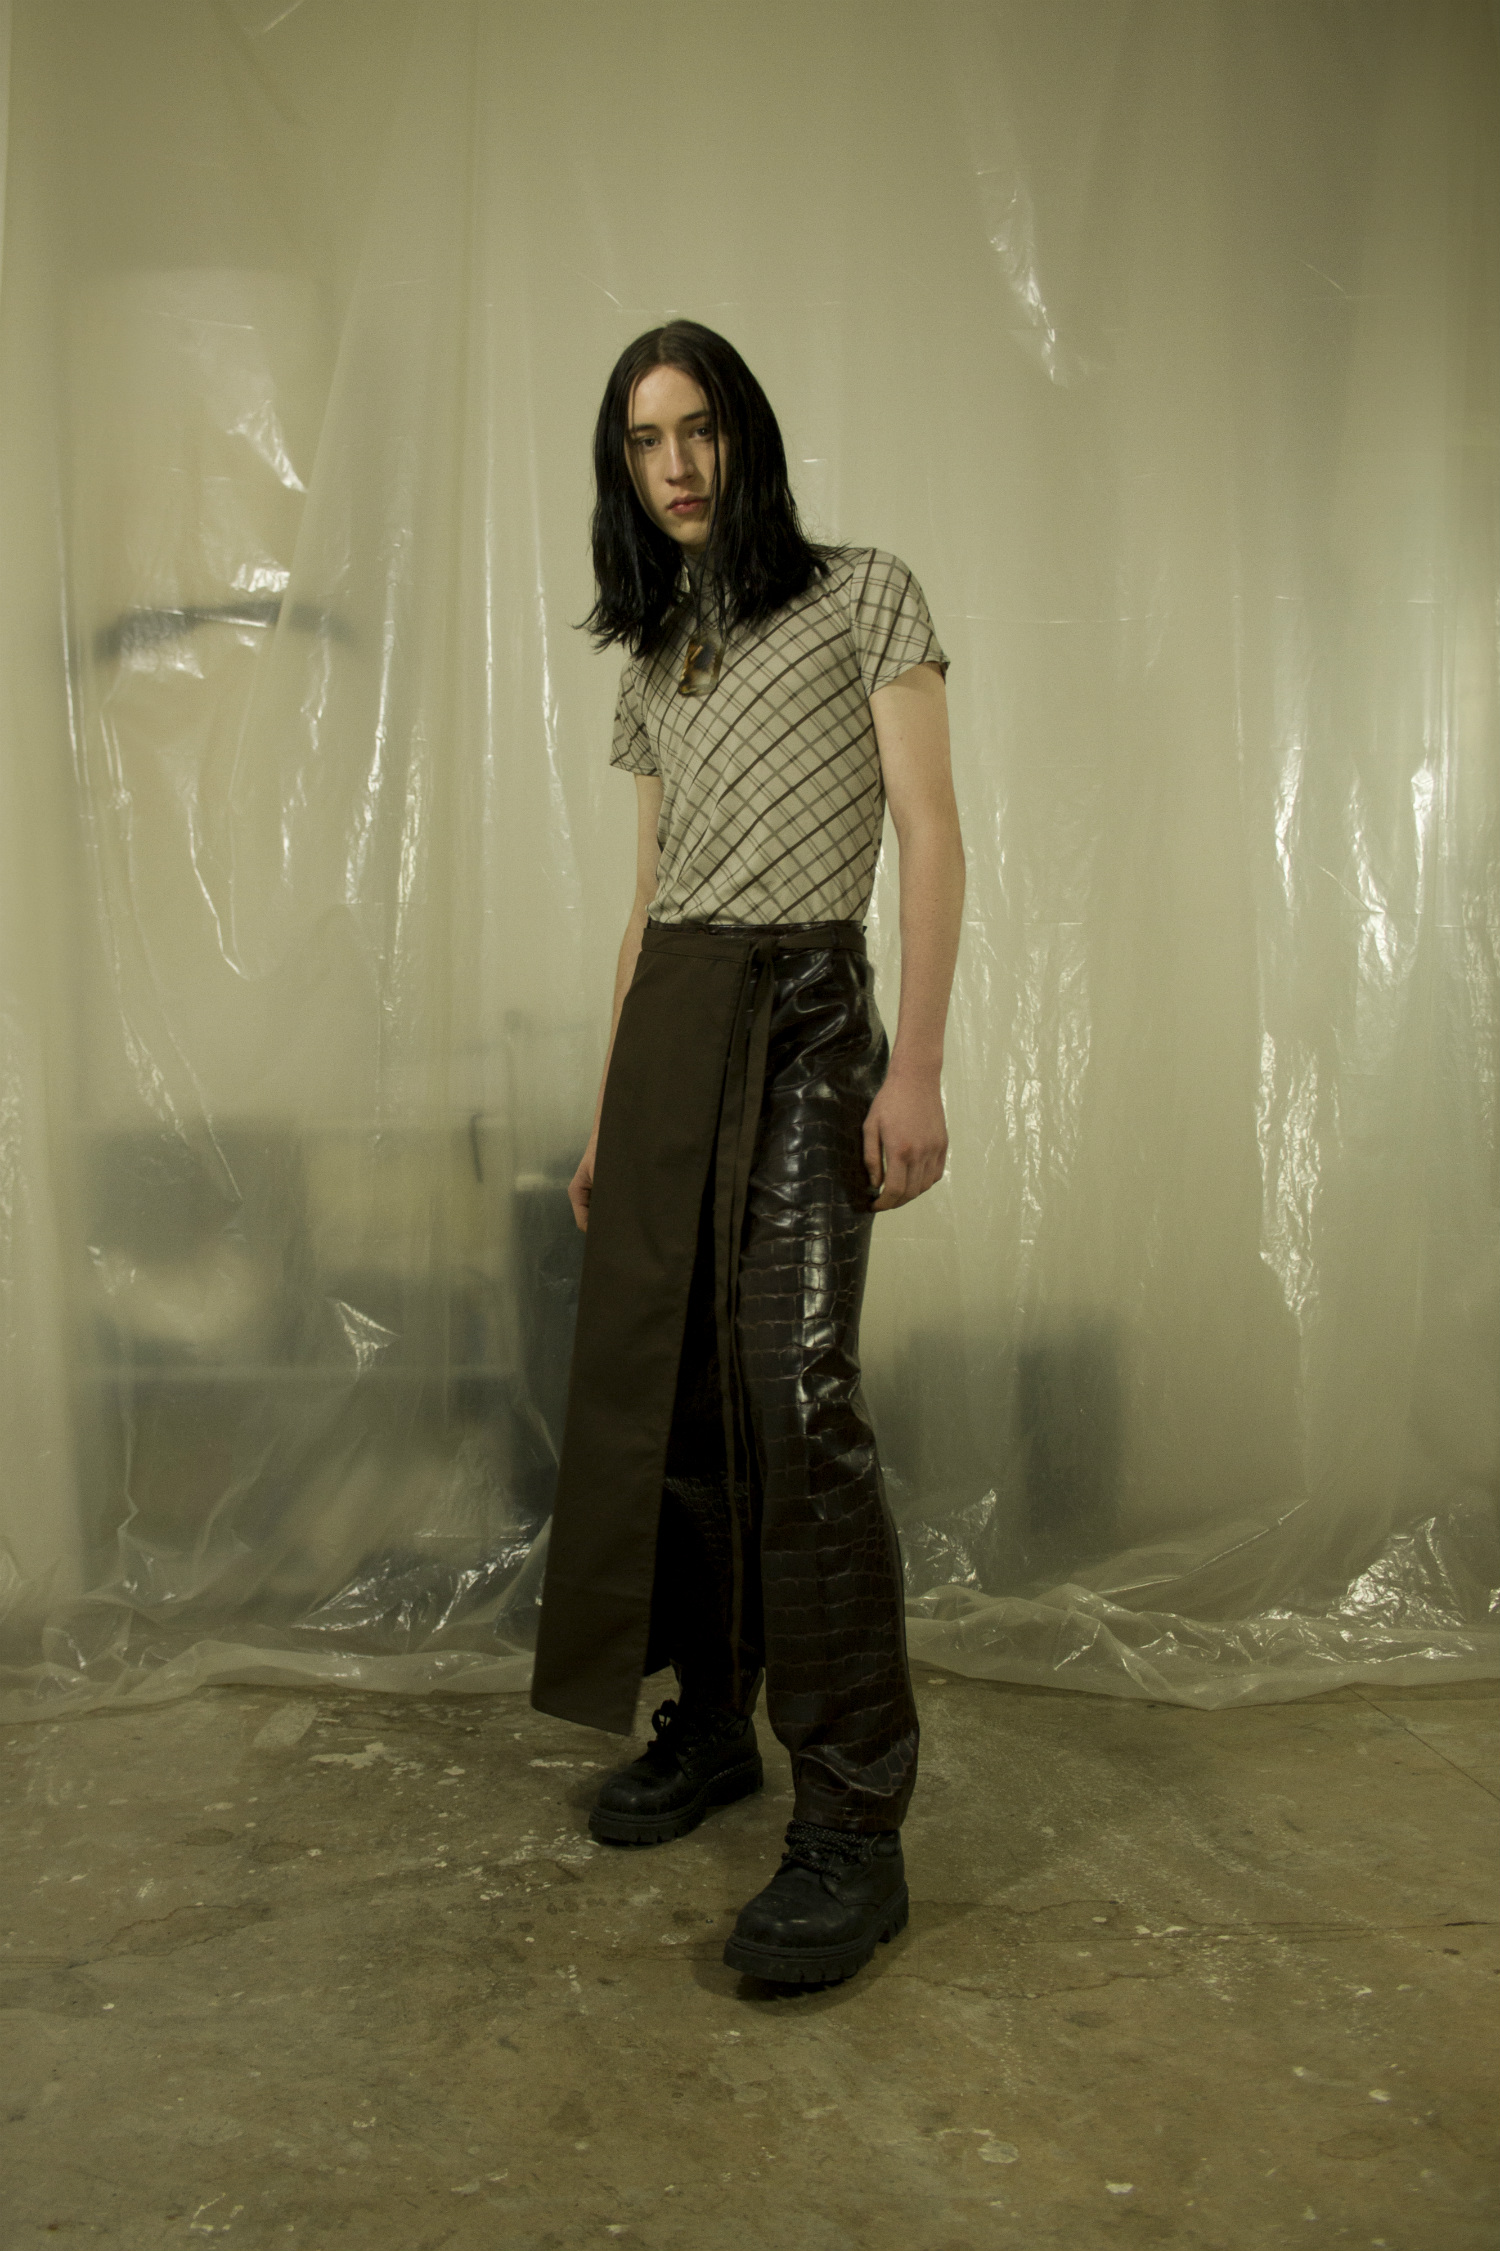 THRIFTCORE FRITZ SCHIFFERS INDIE MAGAZINE EDITORIAL PHOTOGRAPHY SECOND HAND VETEMENTS FASHION